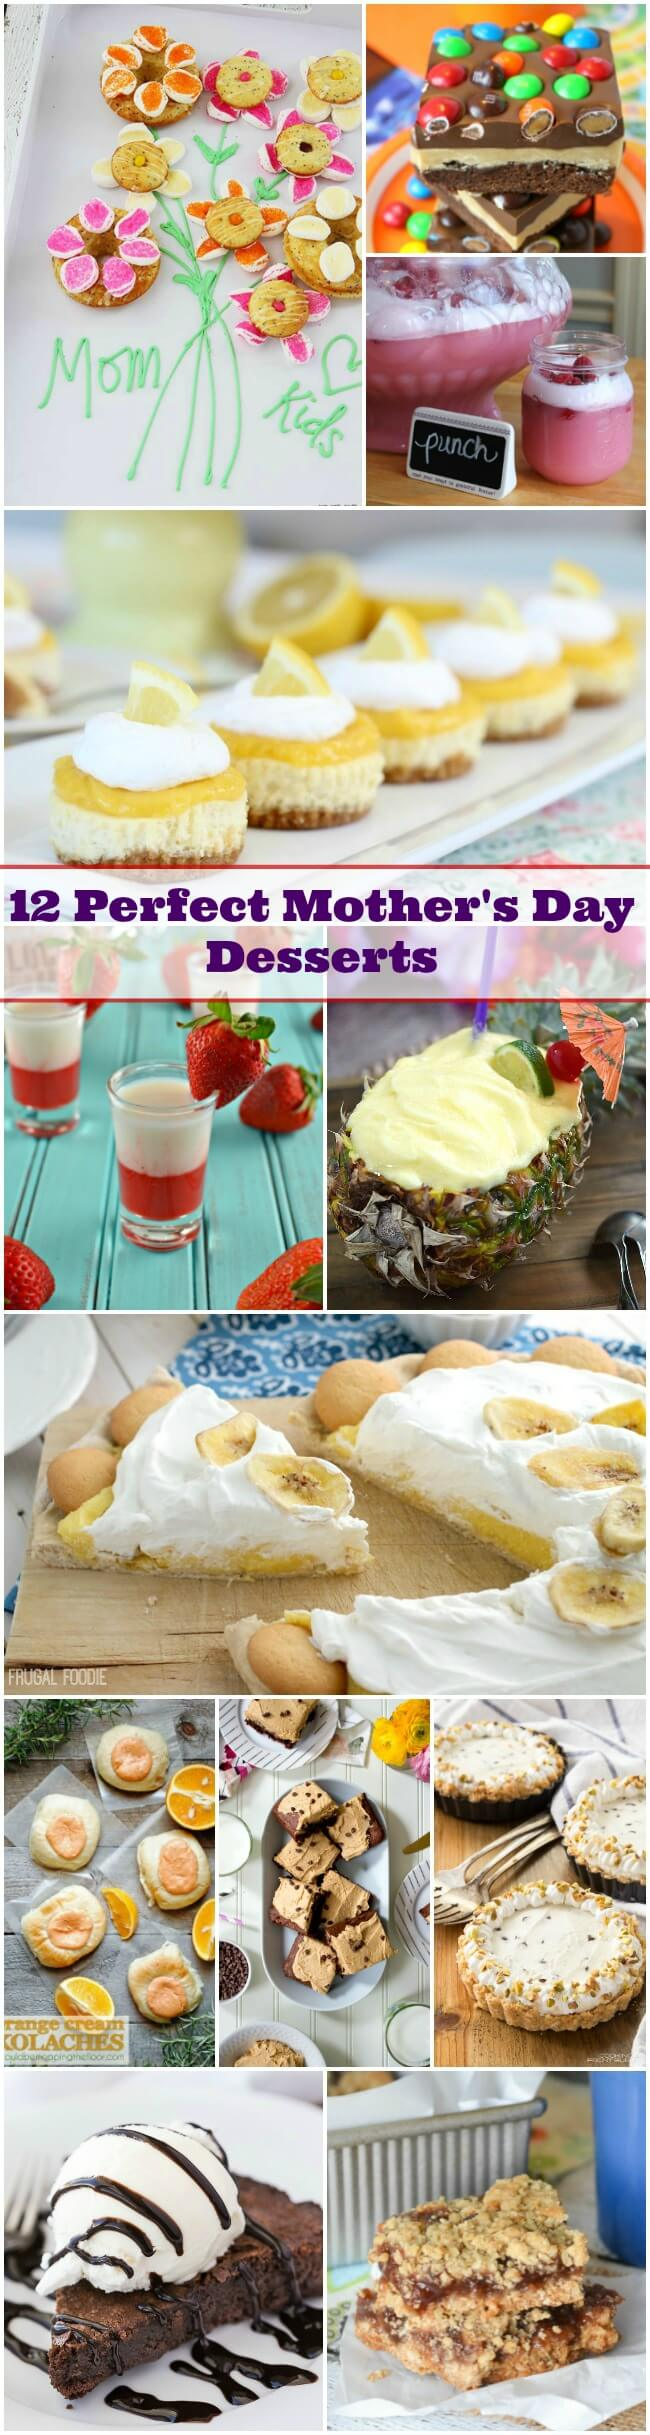 12 Perfect Mother's Day Desserts that are sure to make Mom happy! There's chocolate, cheesecake, drinks, brownie, and more that Dad and the kids can make!